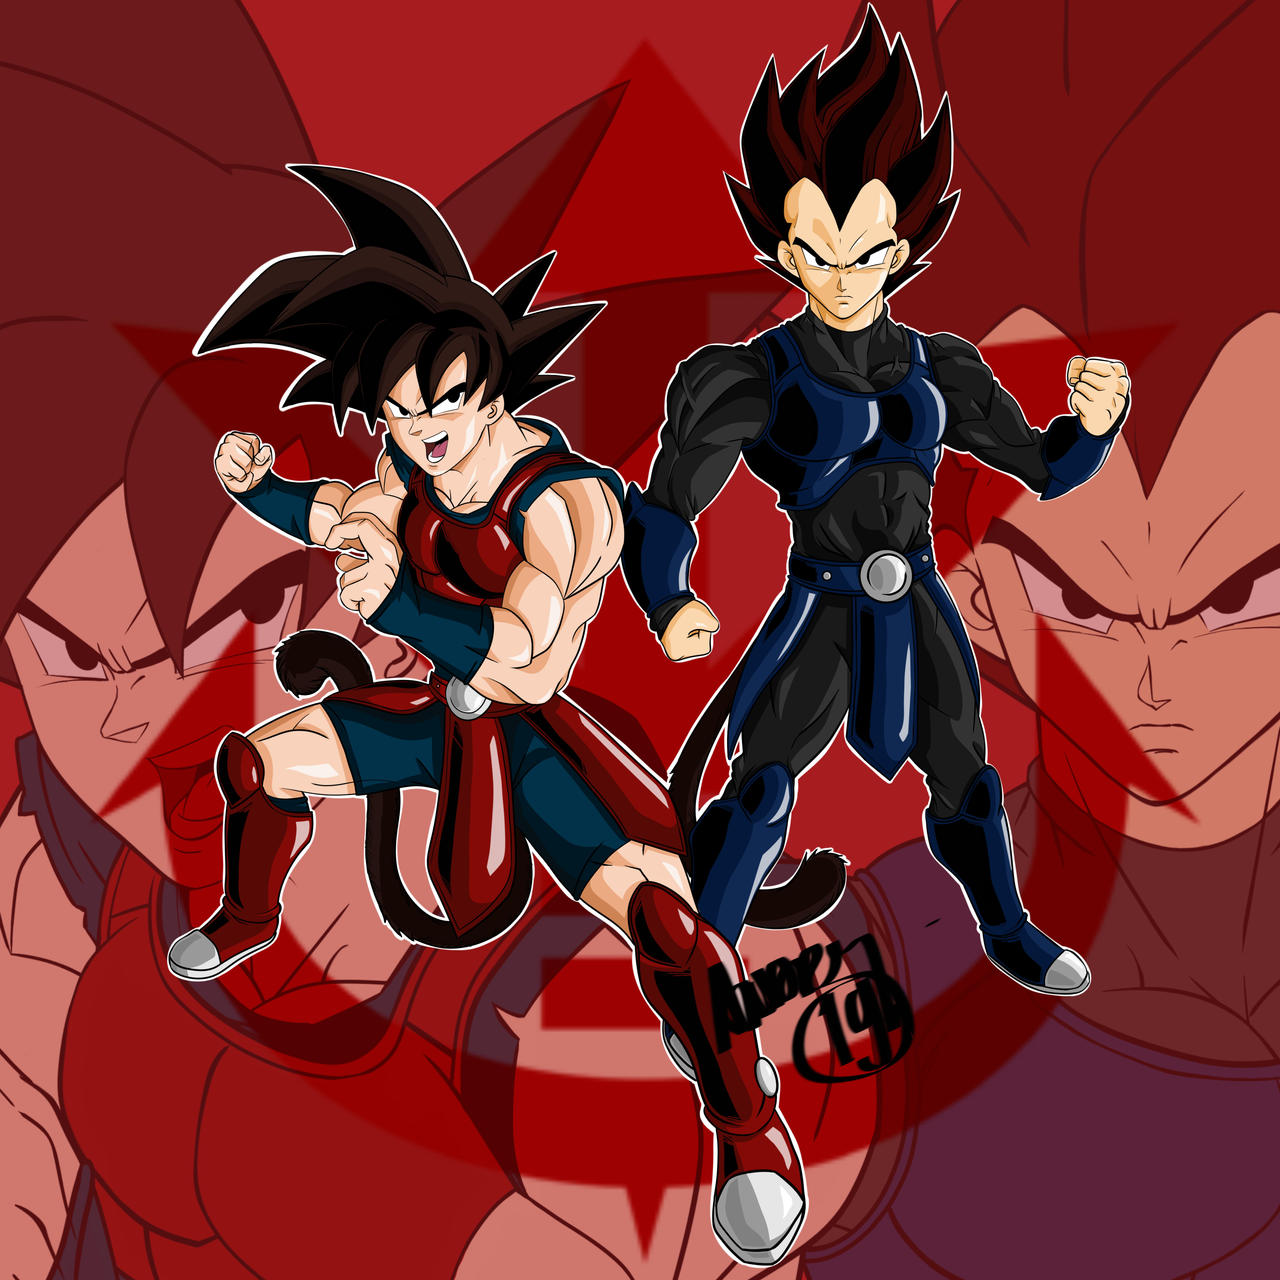 Goku And Vegeta In Old Saiyan Armor By Kaosmerah On Deviantart Read more information about the character vegeta from dragon ball gt? goku and vegeta in old saiyan armor by